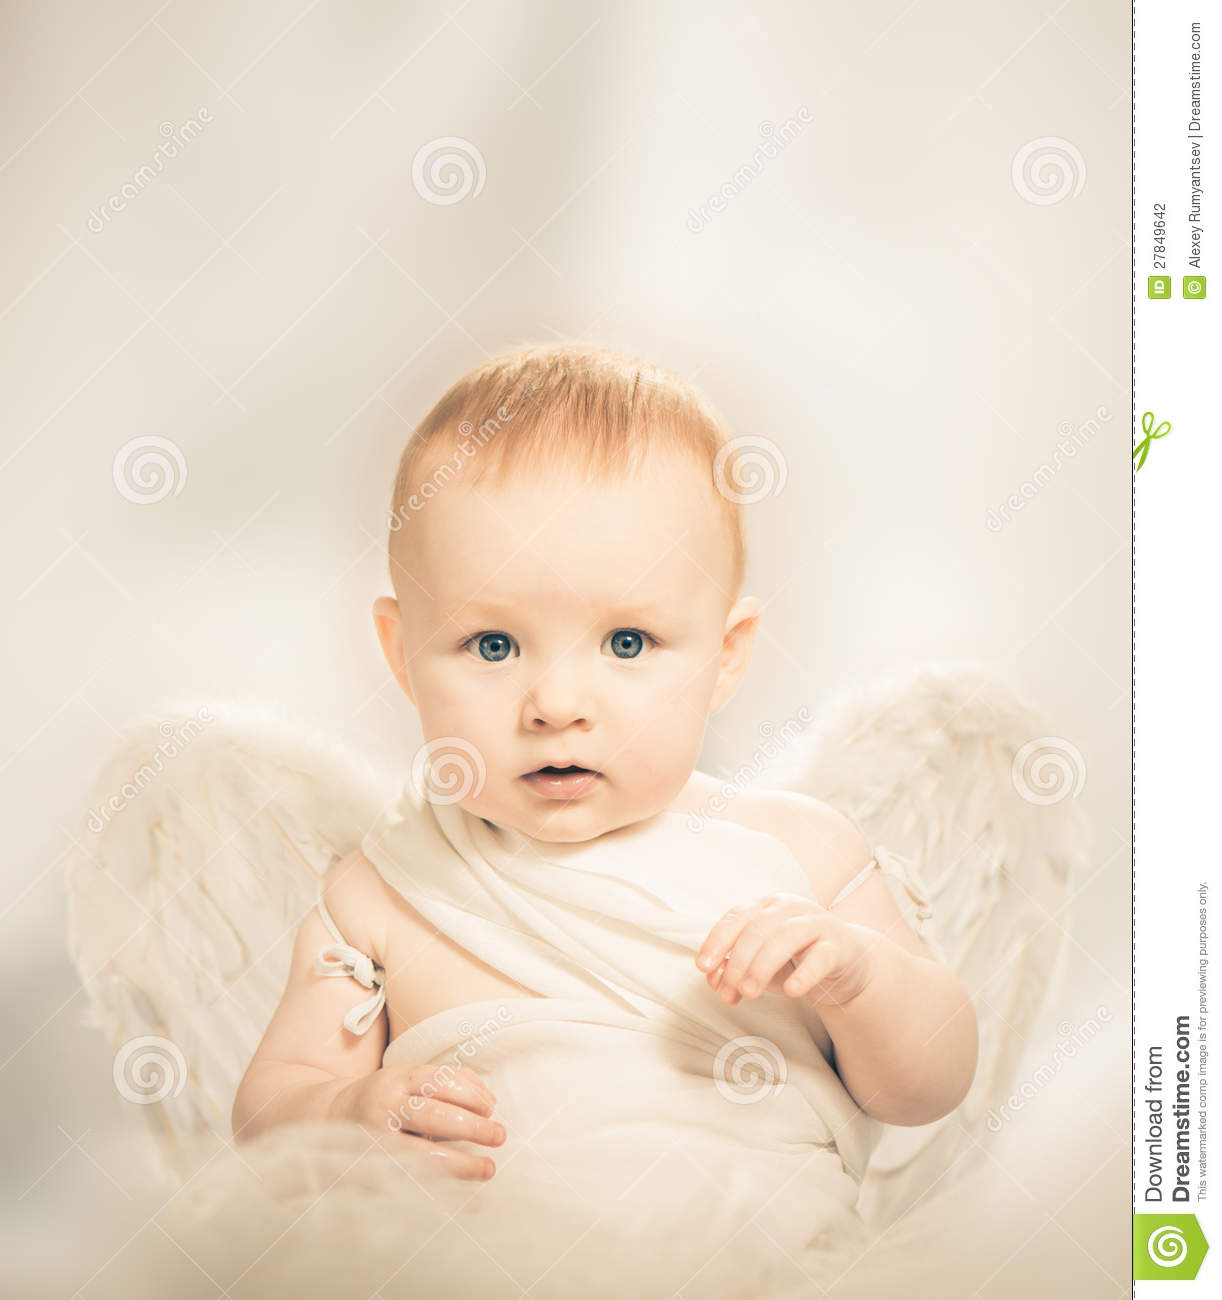 Baby Angel Stock Photography - Image: 27849642